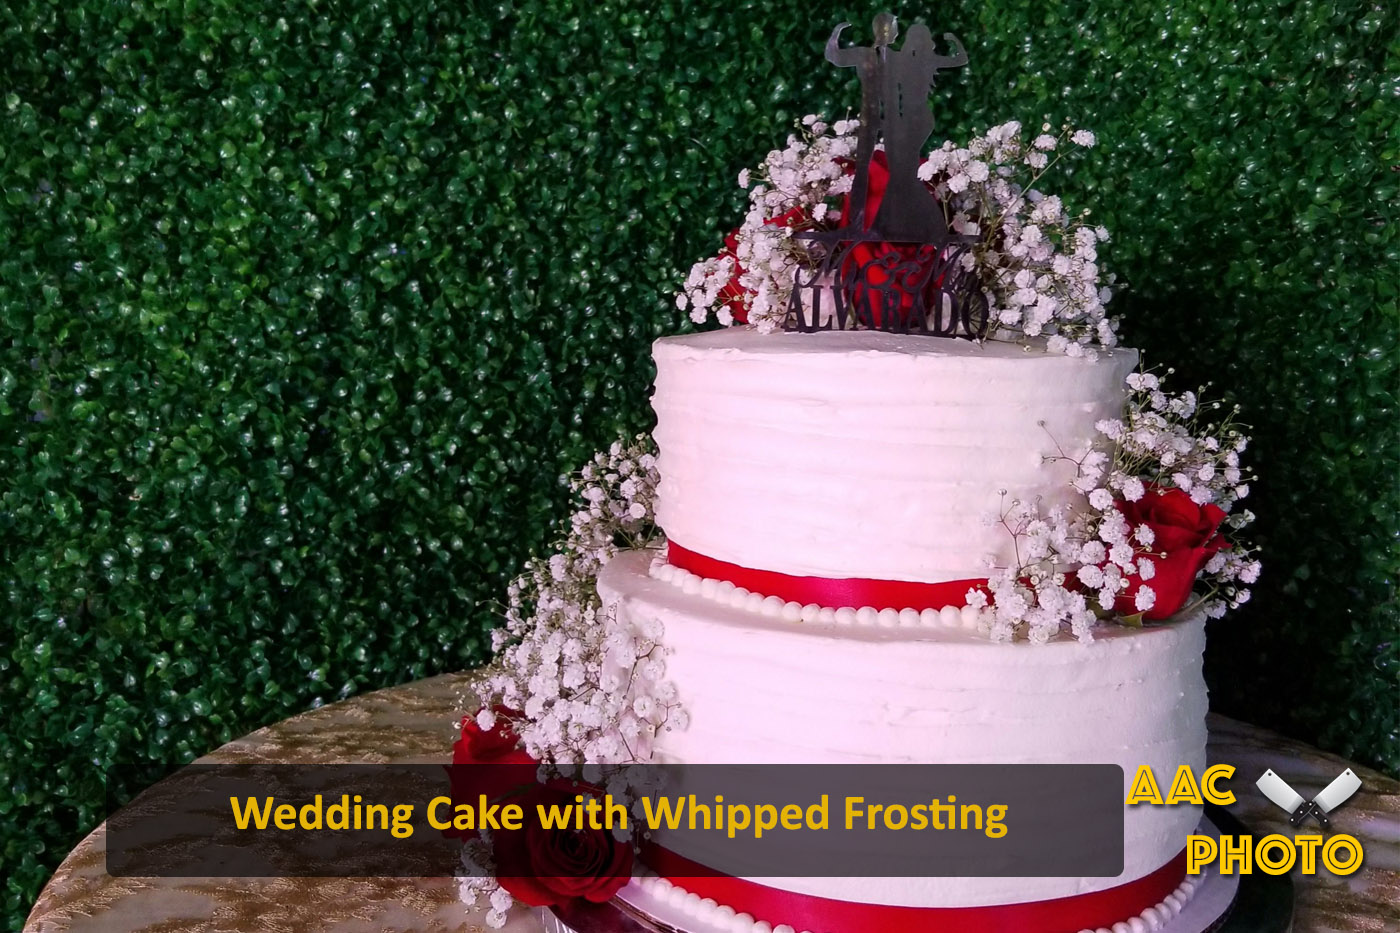 Whipped Frosting Wedding Cake